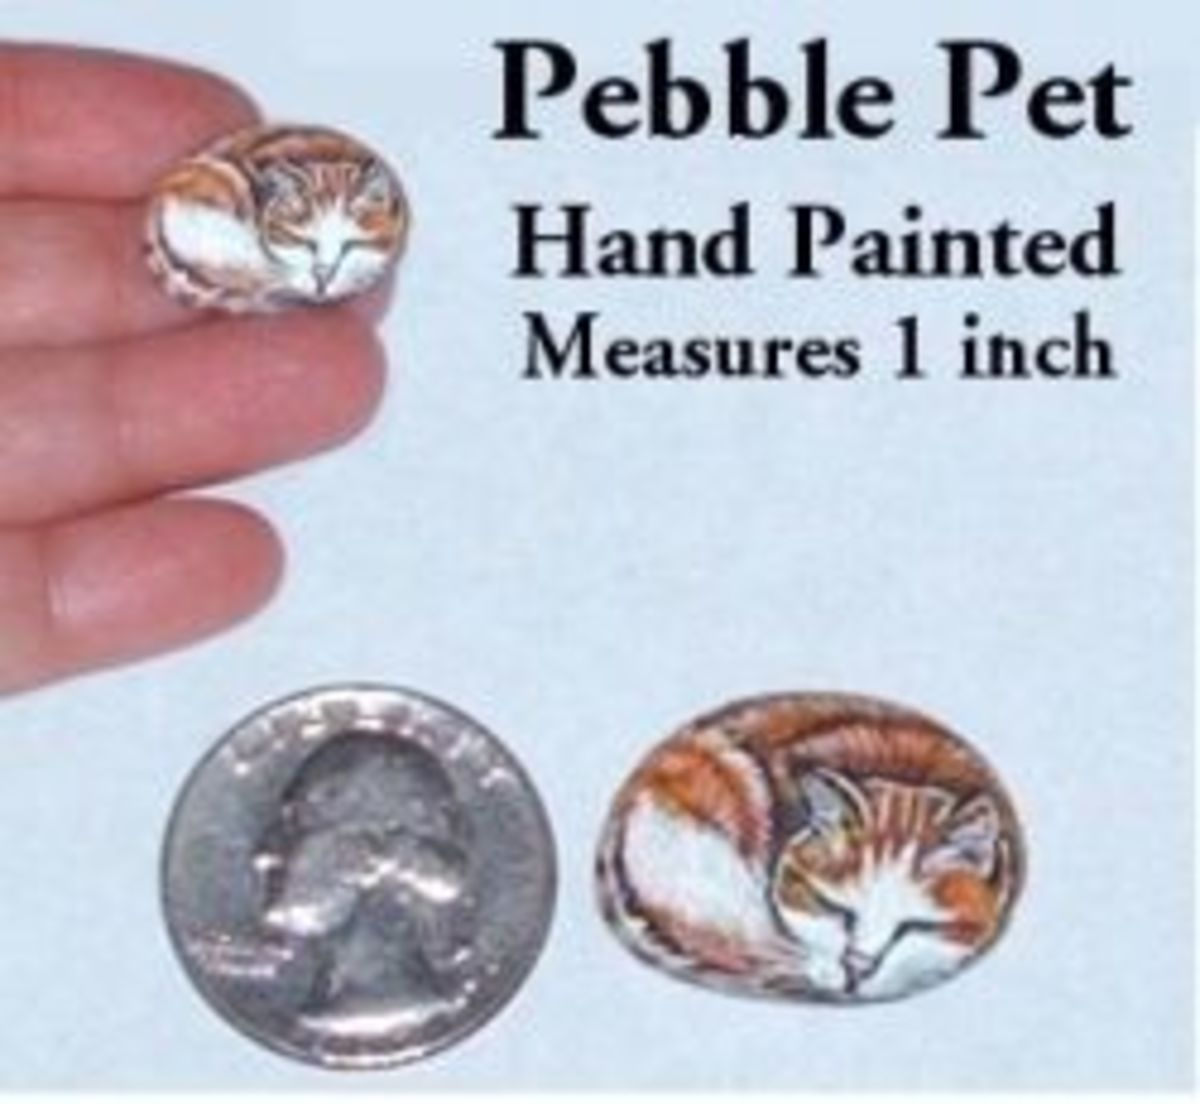 Lisa Carter's tiny Pebble Pets